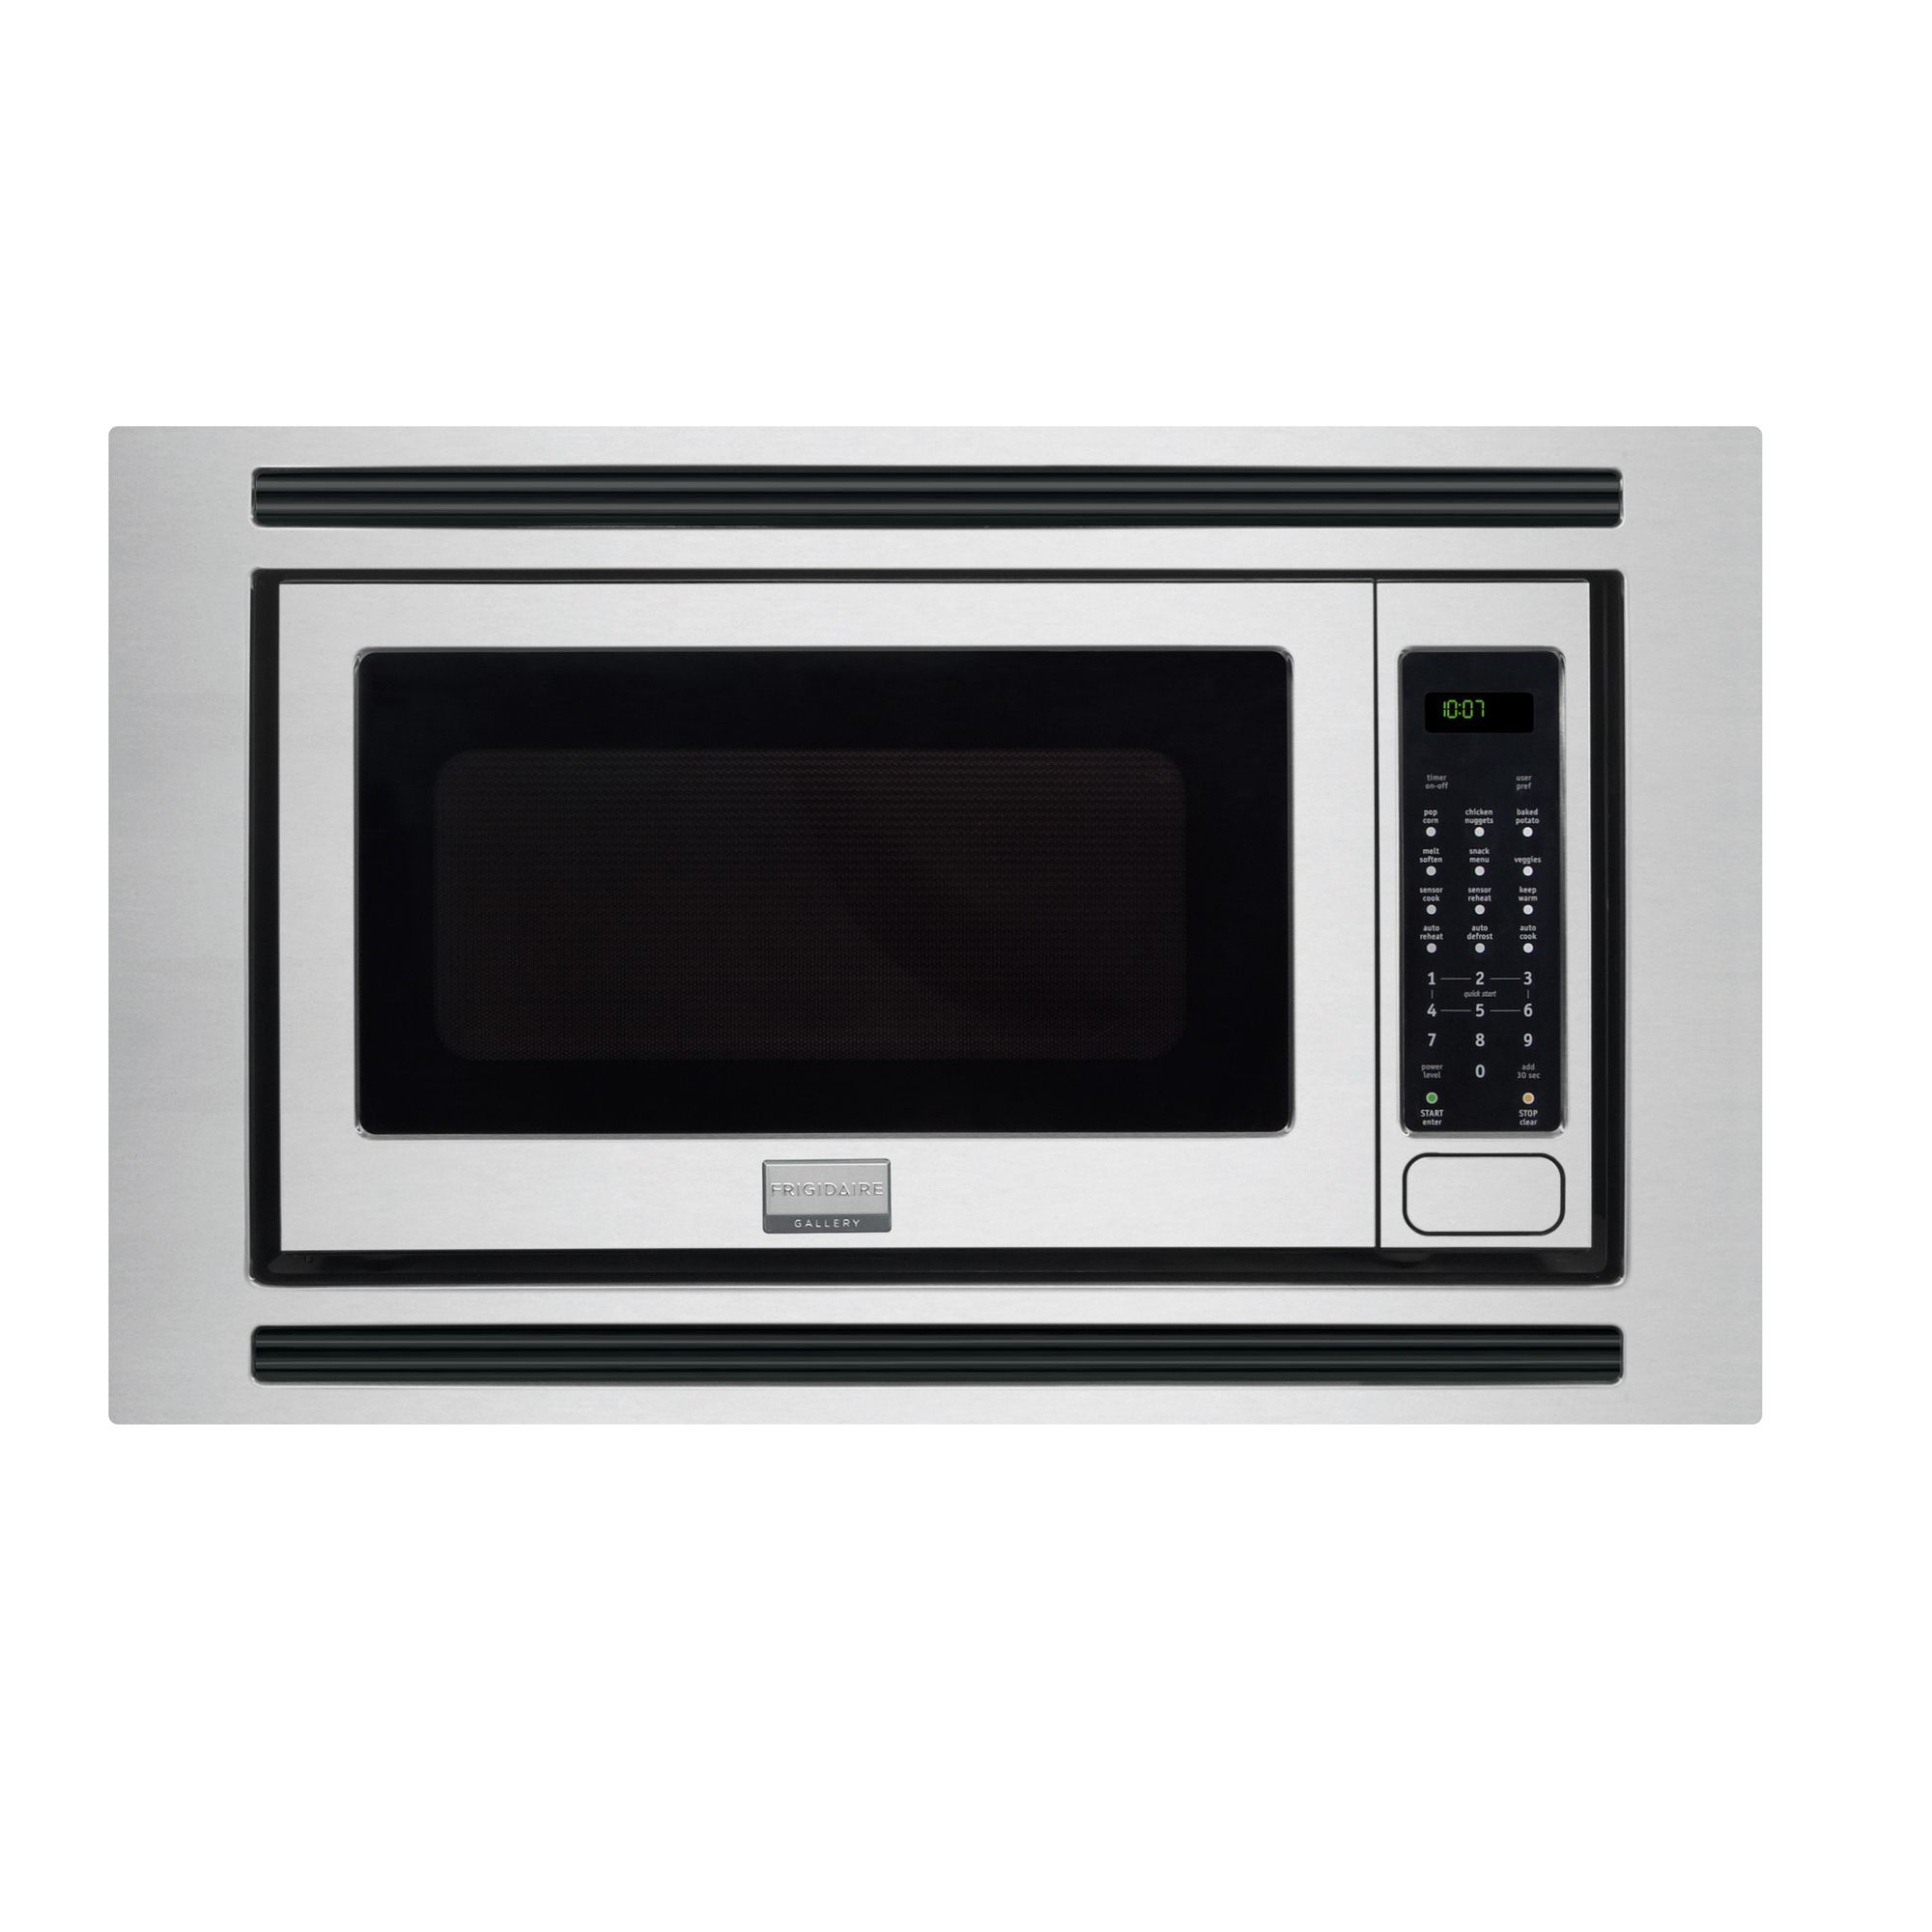 24 The Frigidaire 2 0 Cu Ft Built In Microwave Oven No